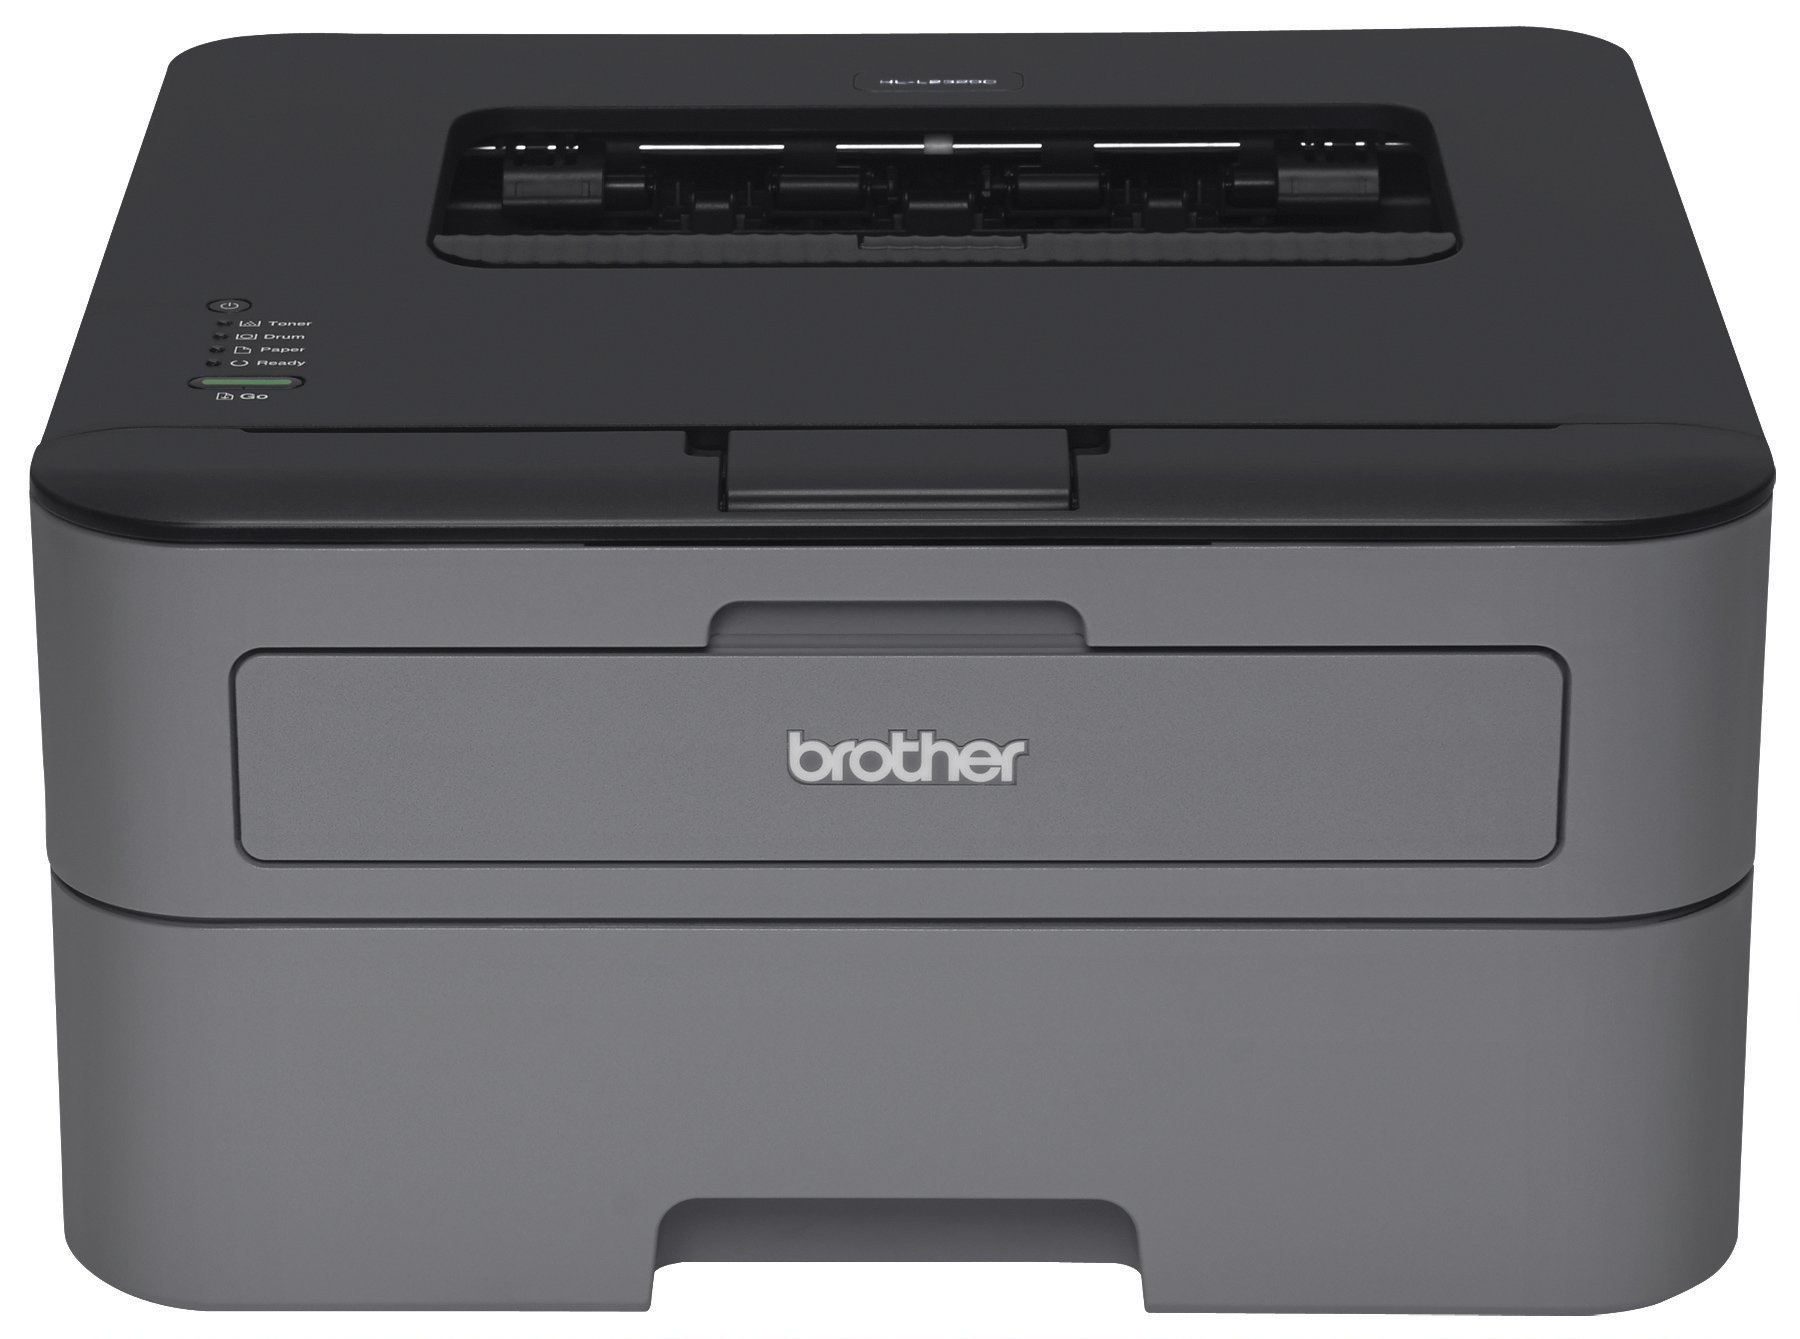 Brother Printer EHLL2320D Compact Laser Printer With Duplex Printing (Certified Refurbished)